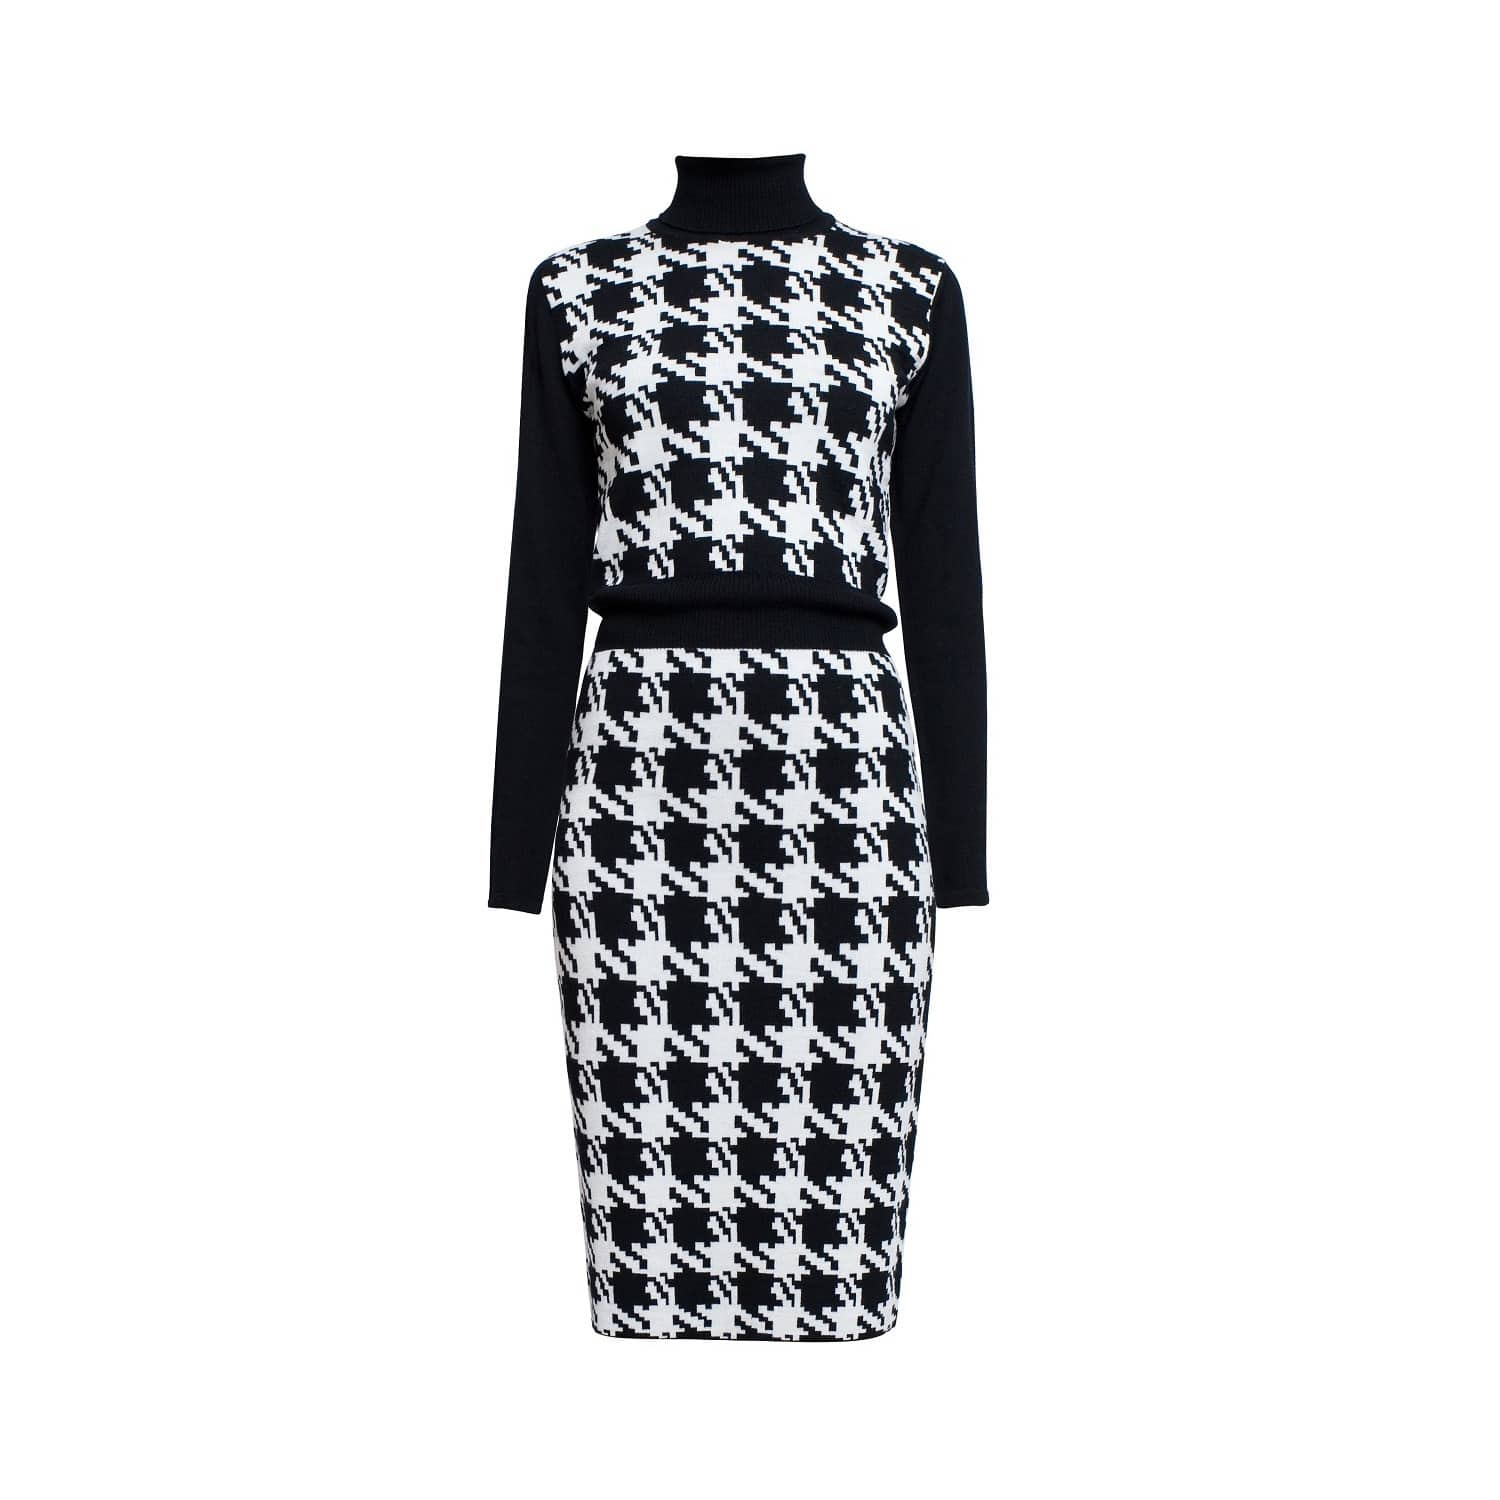 cfb46117d0dc6 Lina Houndstooth Merino Wool Knitted Dress image